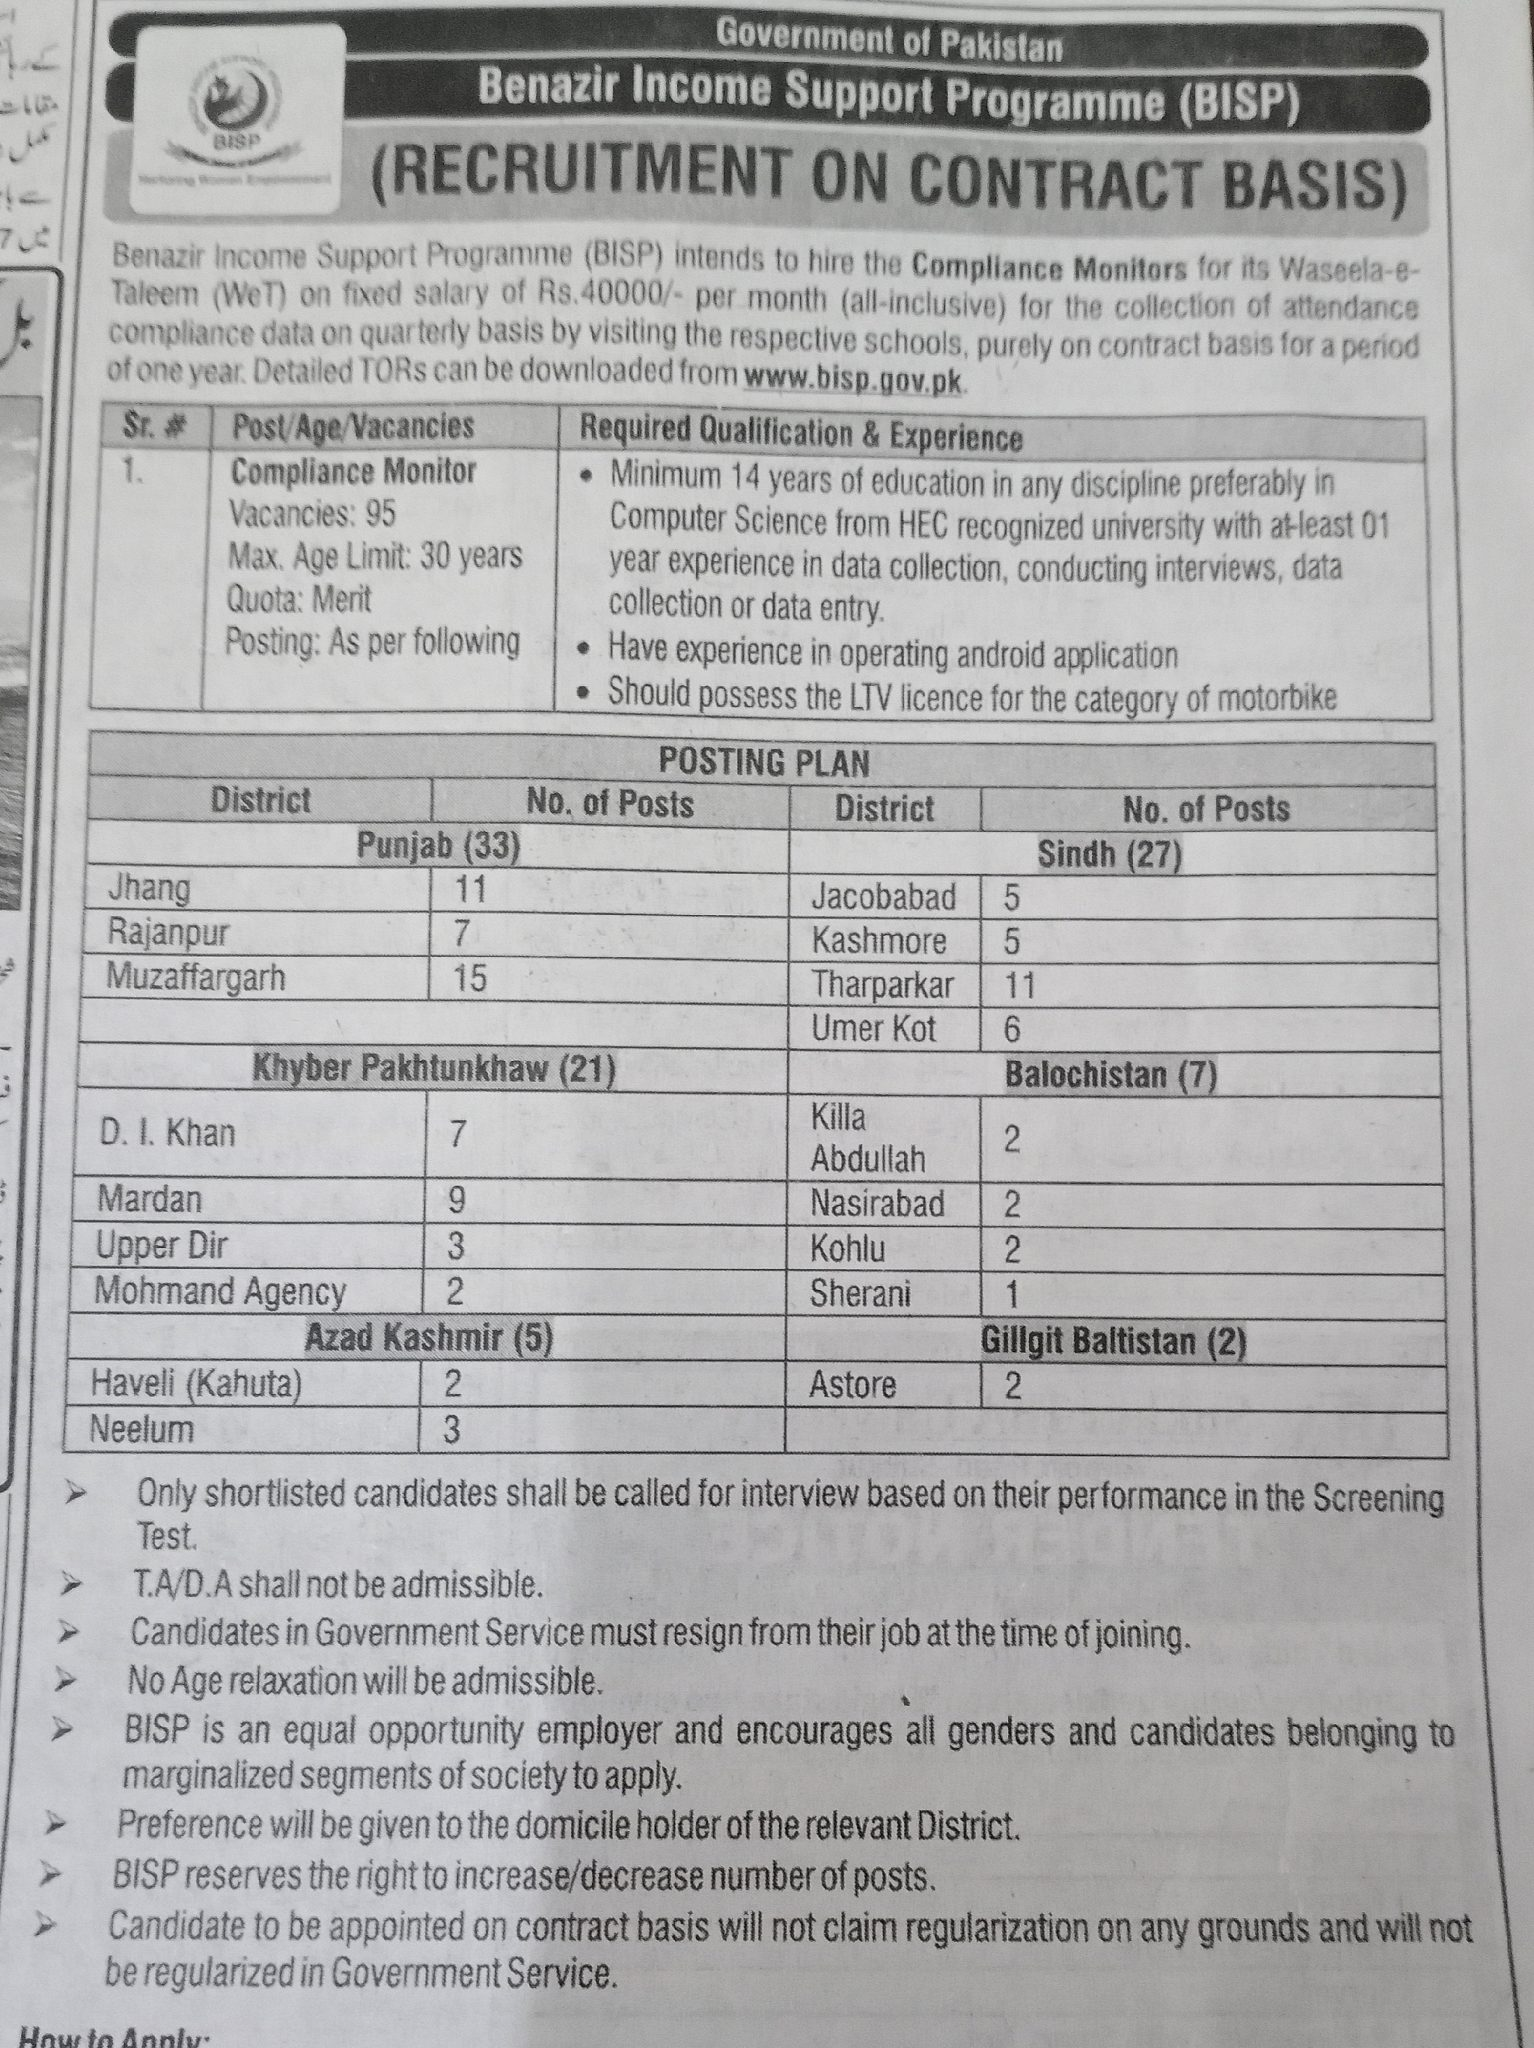 Benazir Income Support Programme BISP Jobs 2020 Application Form Advertisement